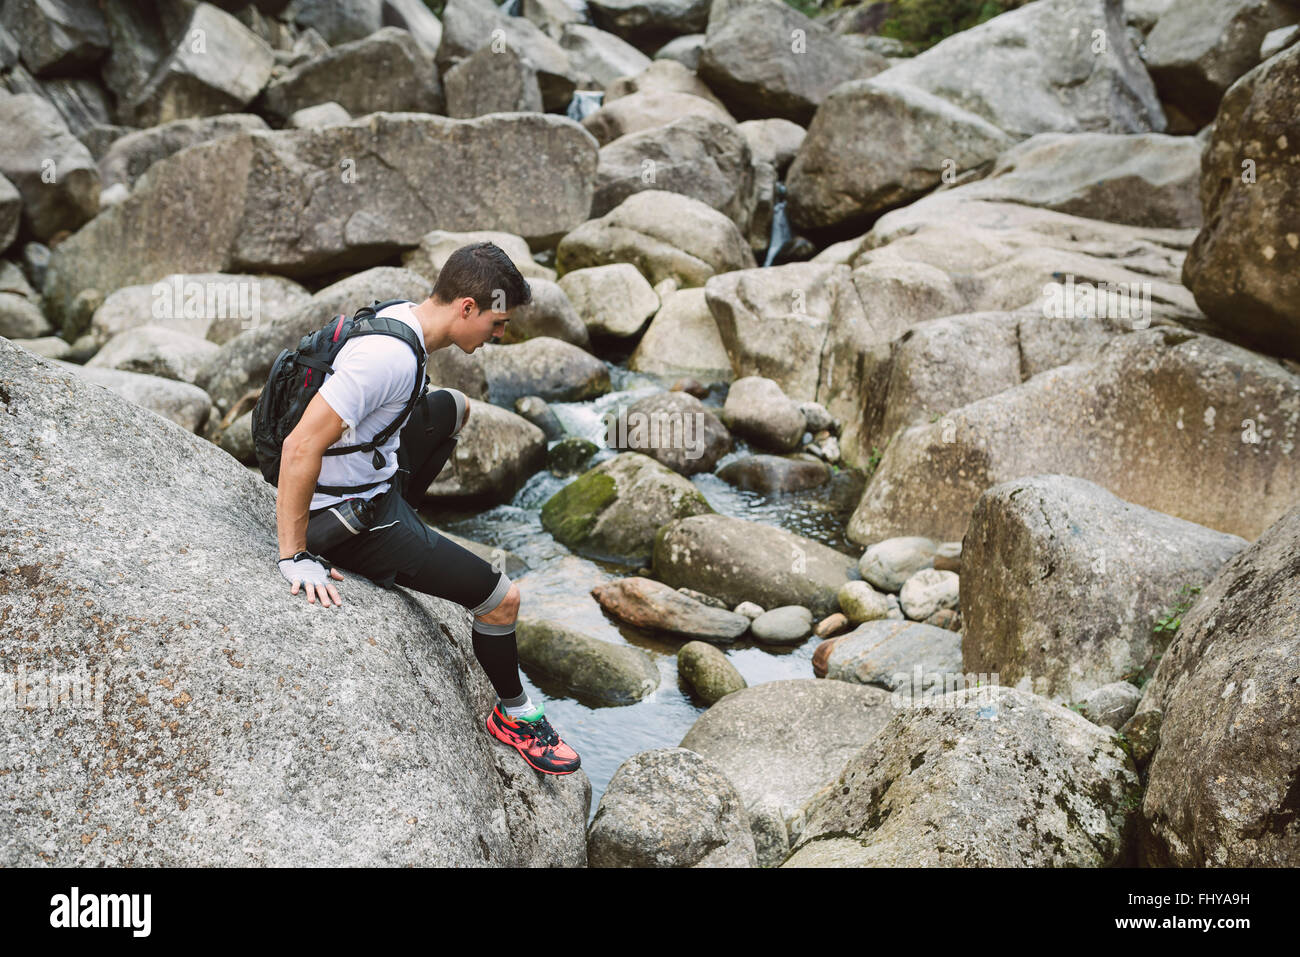 Spain, A Capela, ultra trail runner climbing on a rock - Stock Image